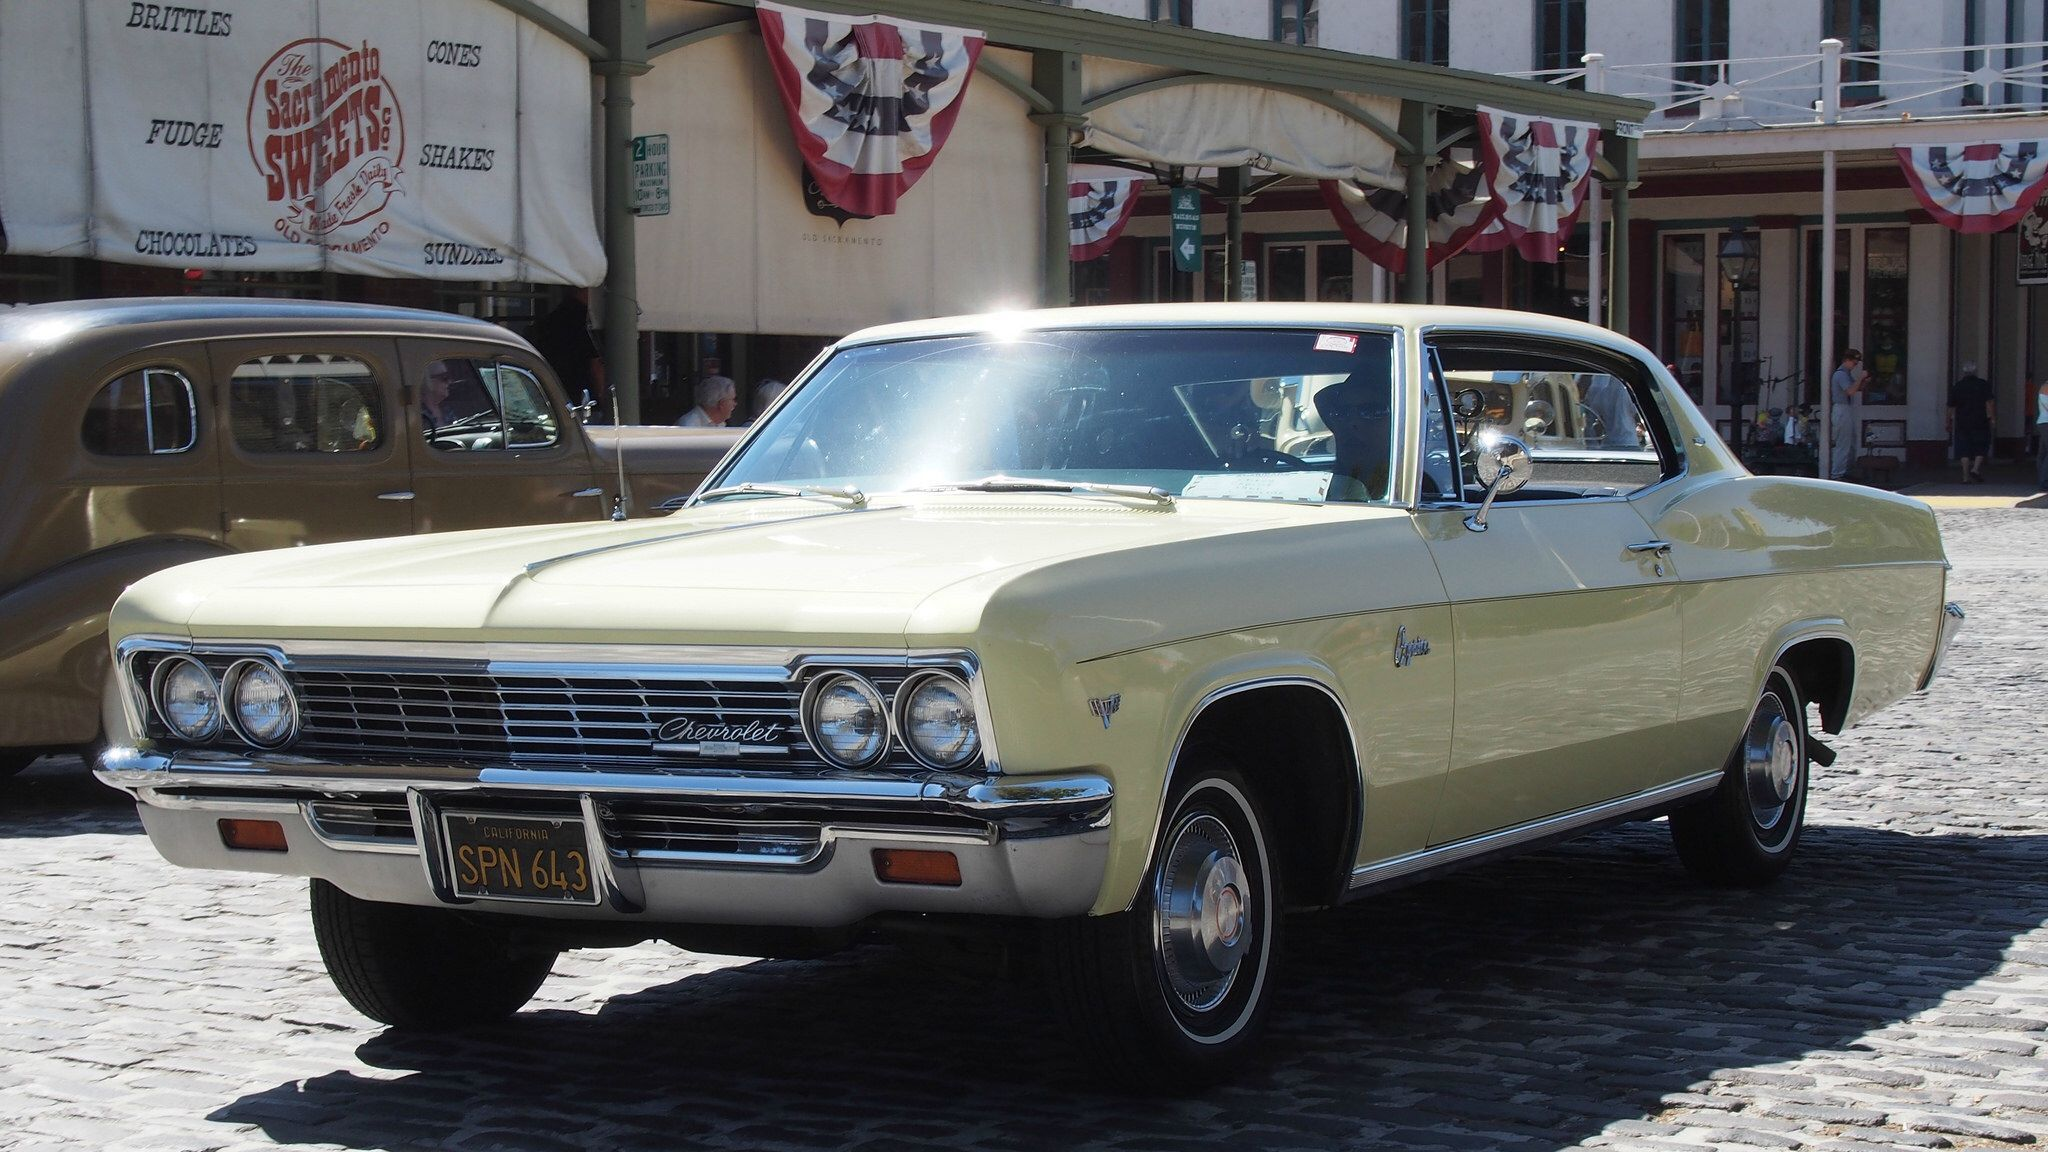 1966 Chevrolet Caprice Hardtiop Spn 643 1 Classic Cars Chevy For Sale